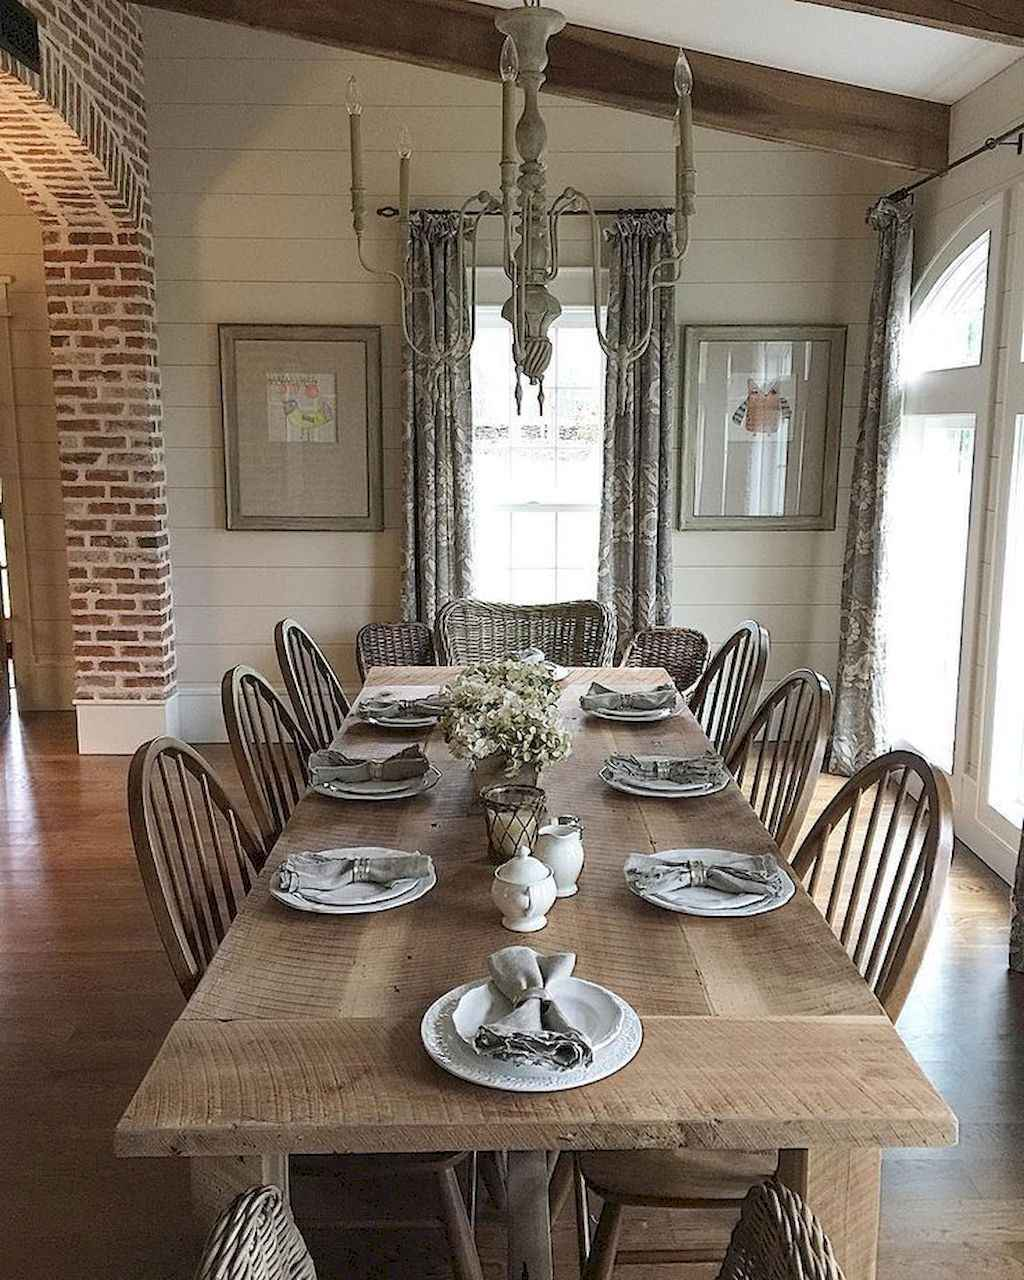 French Country Dining Room Ideas: Beautiful French Country Dining Room Ideas (3)